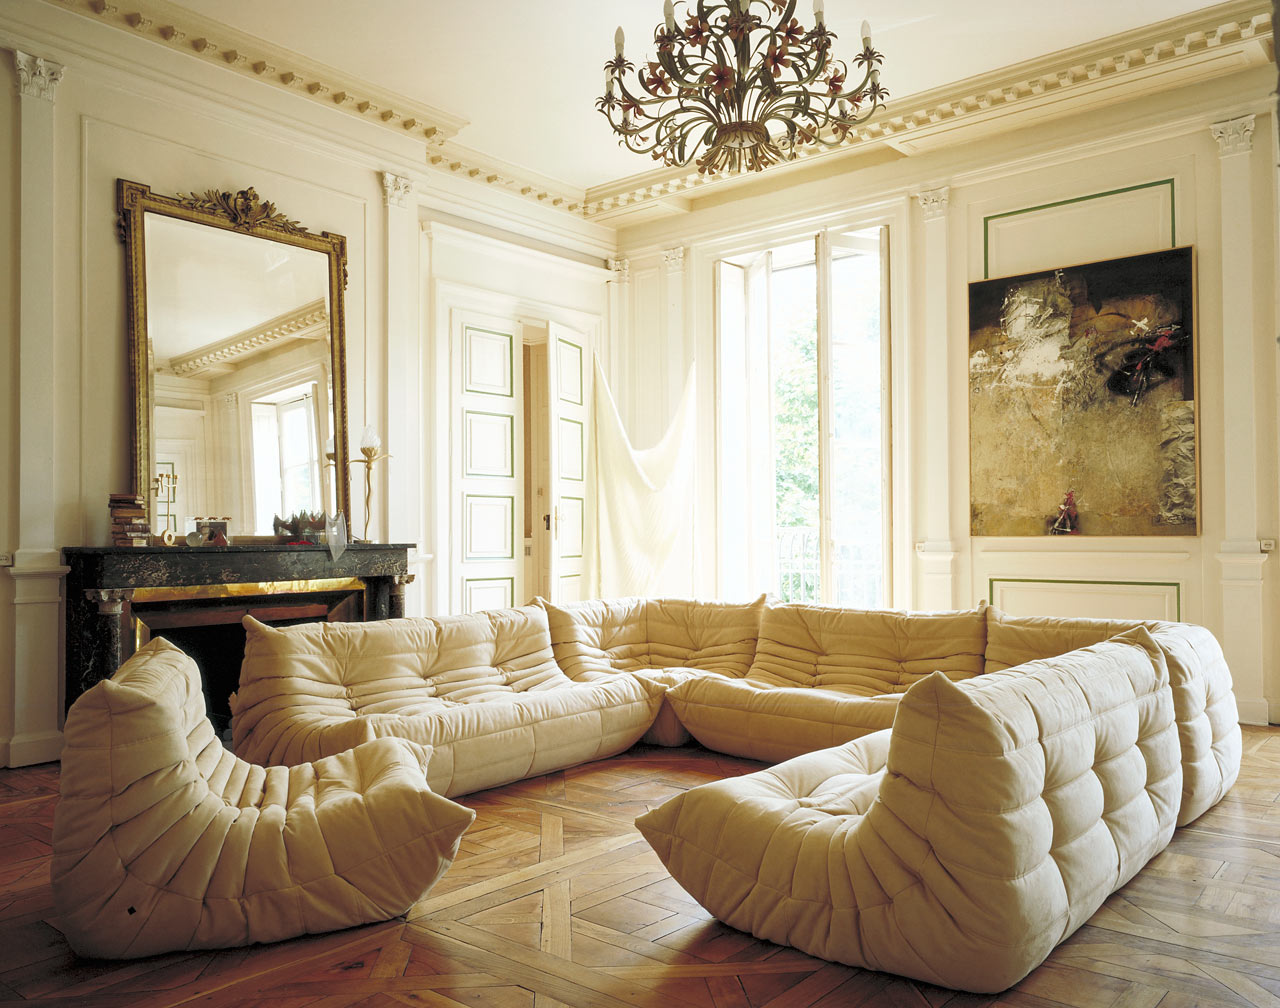 togo-seating-white-ligne-roset-classical